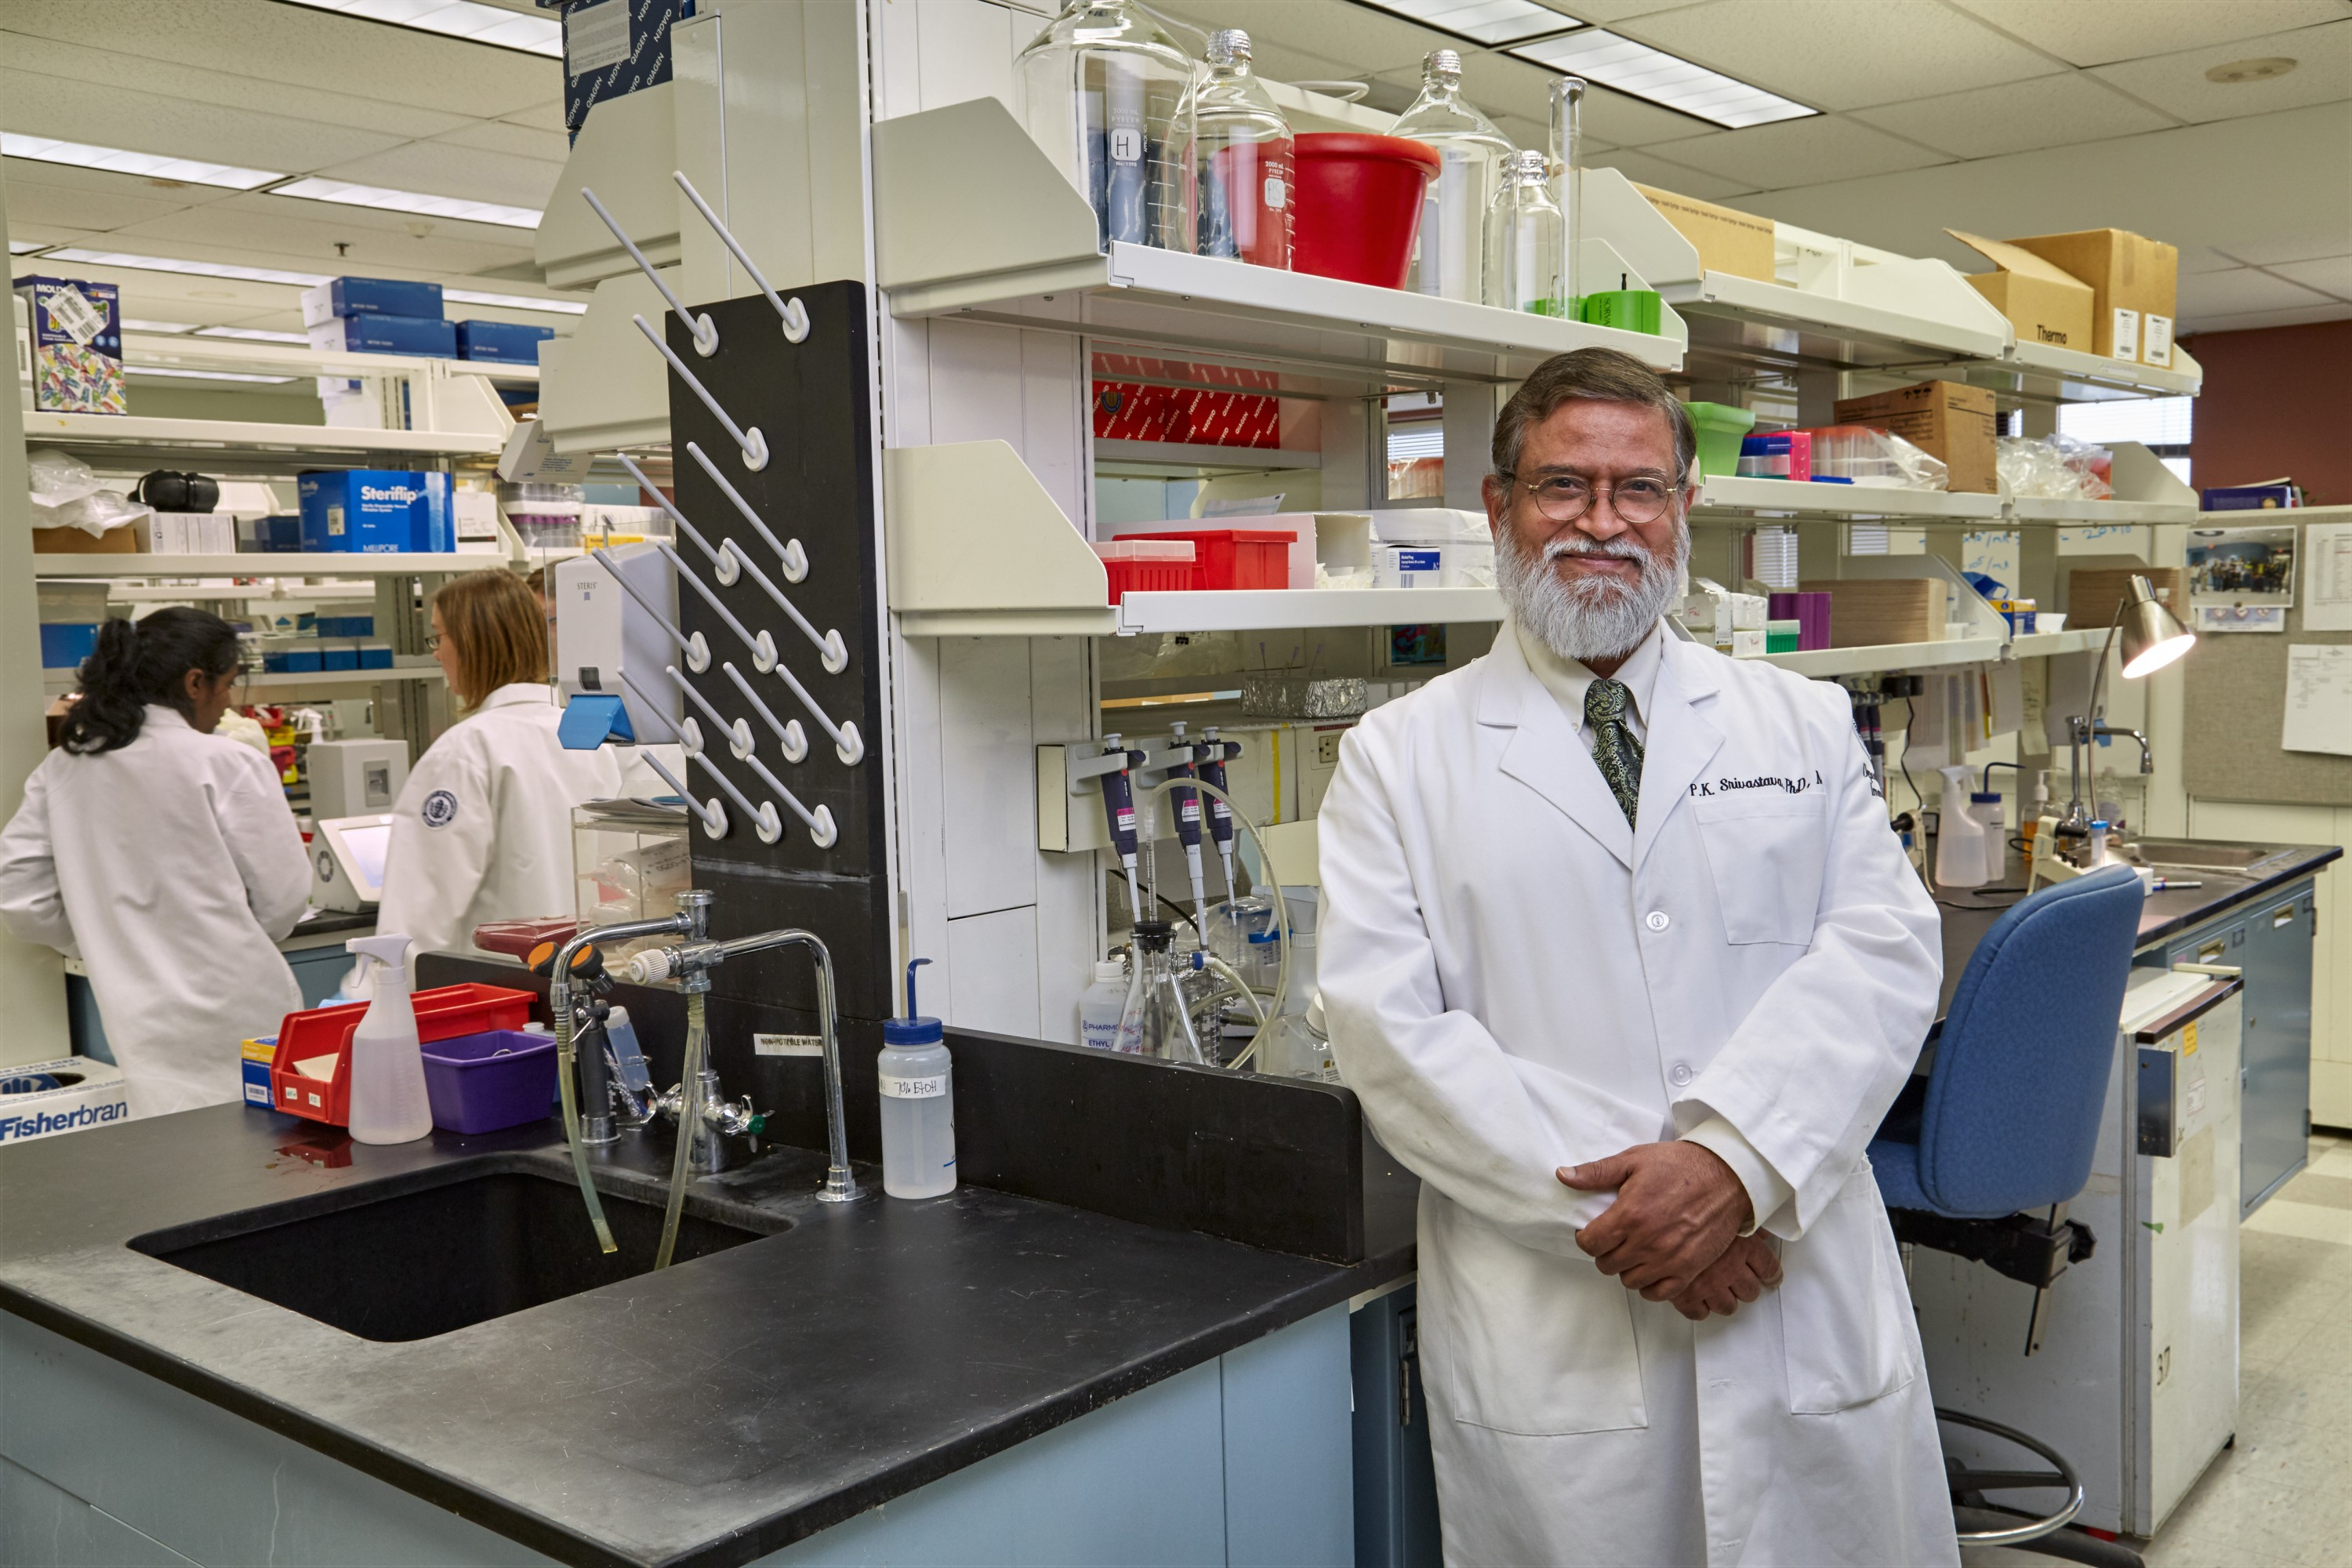 Dr. Pramod Srivastava, ovarian cancer researcher at UConn Health on Oct. 1, 2014. (Lanny Nagler for UConn)